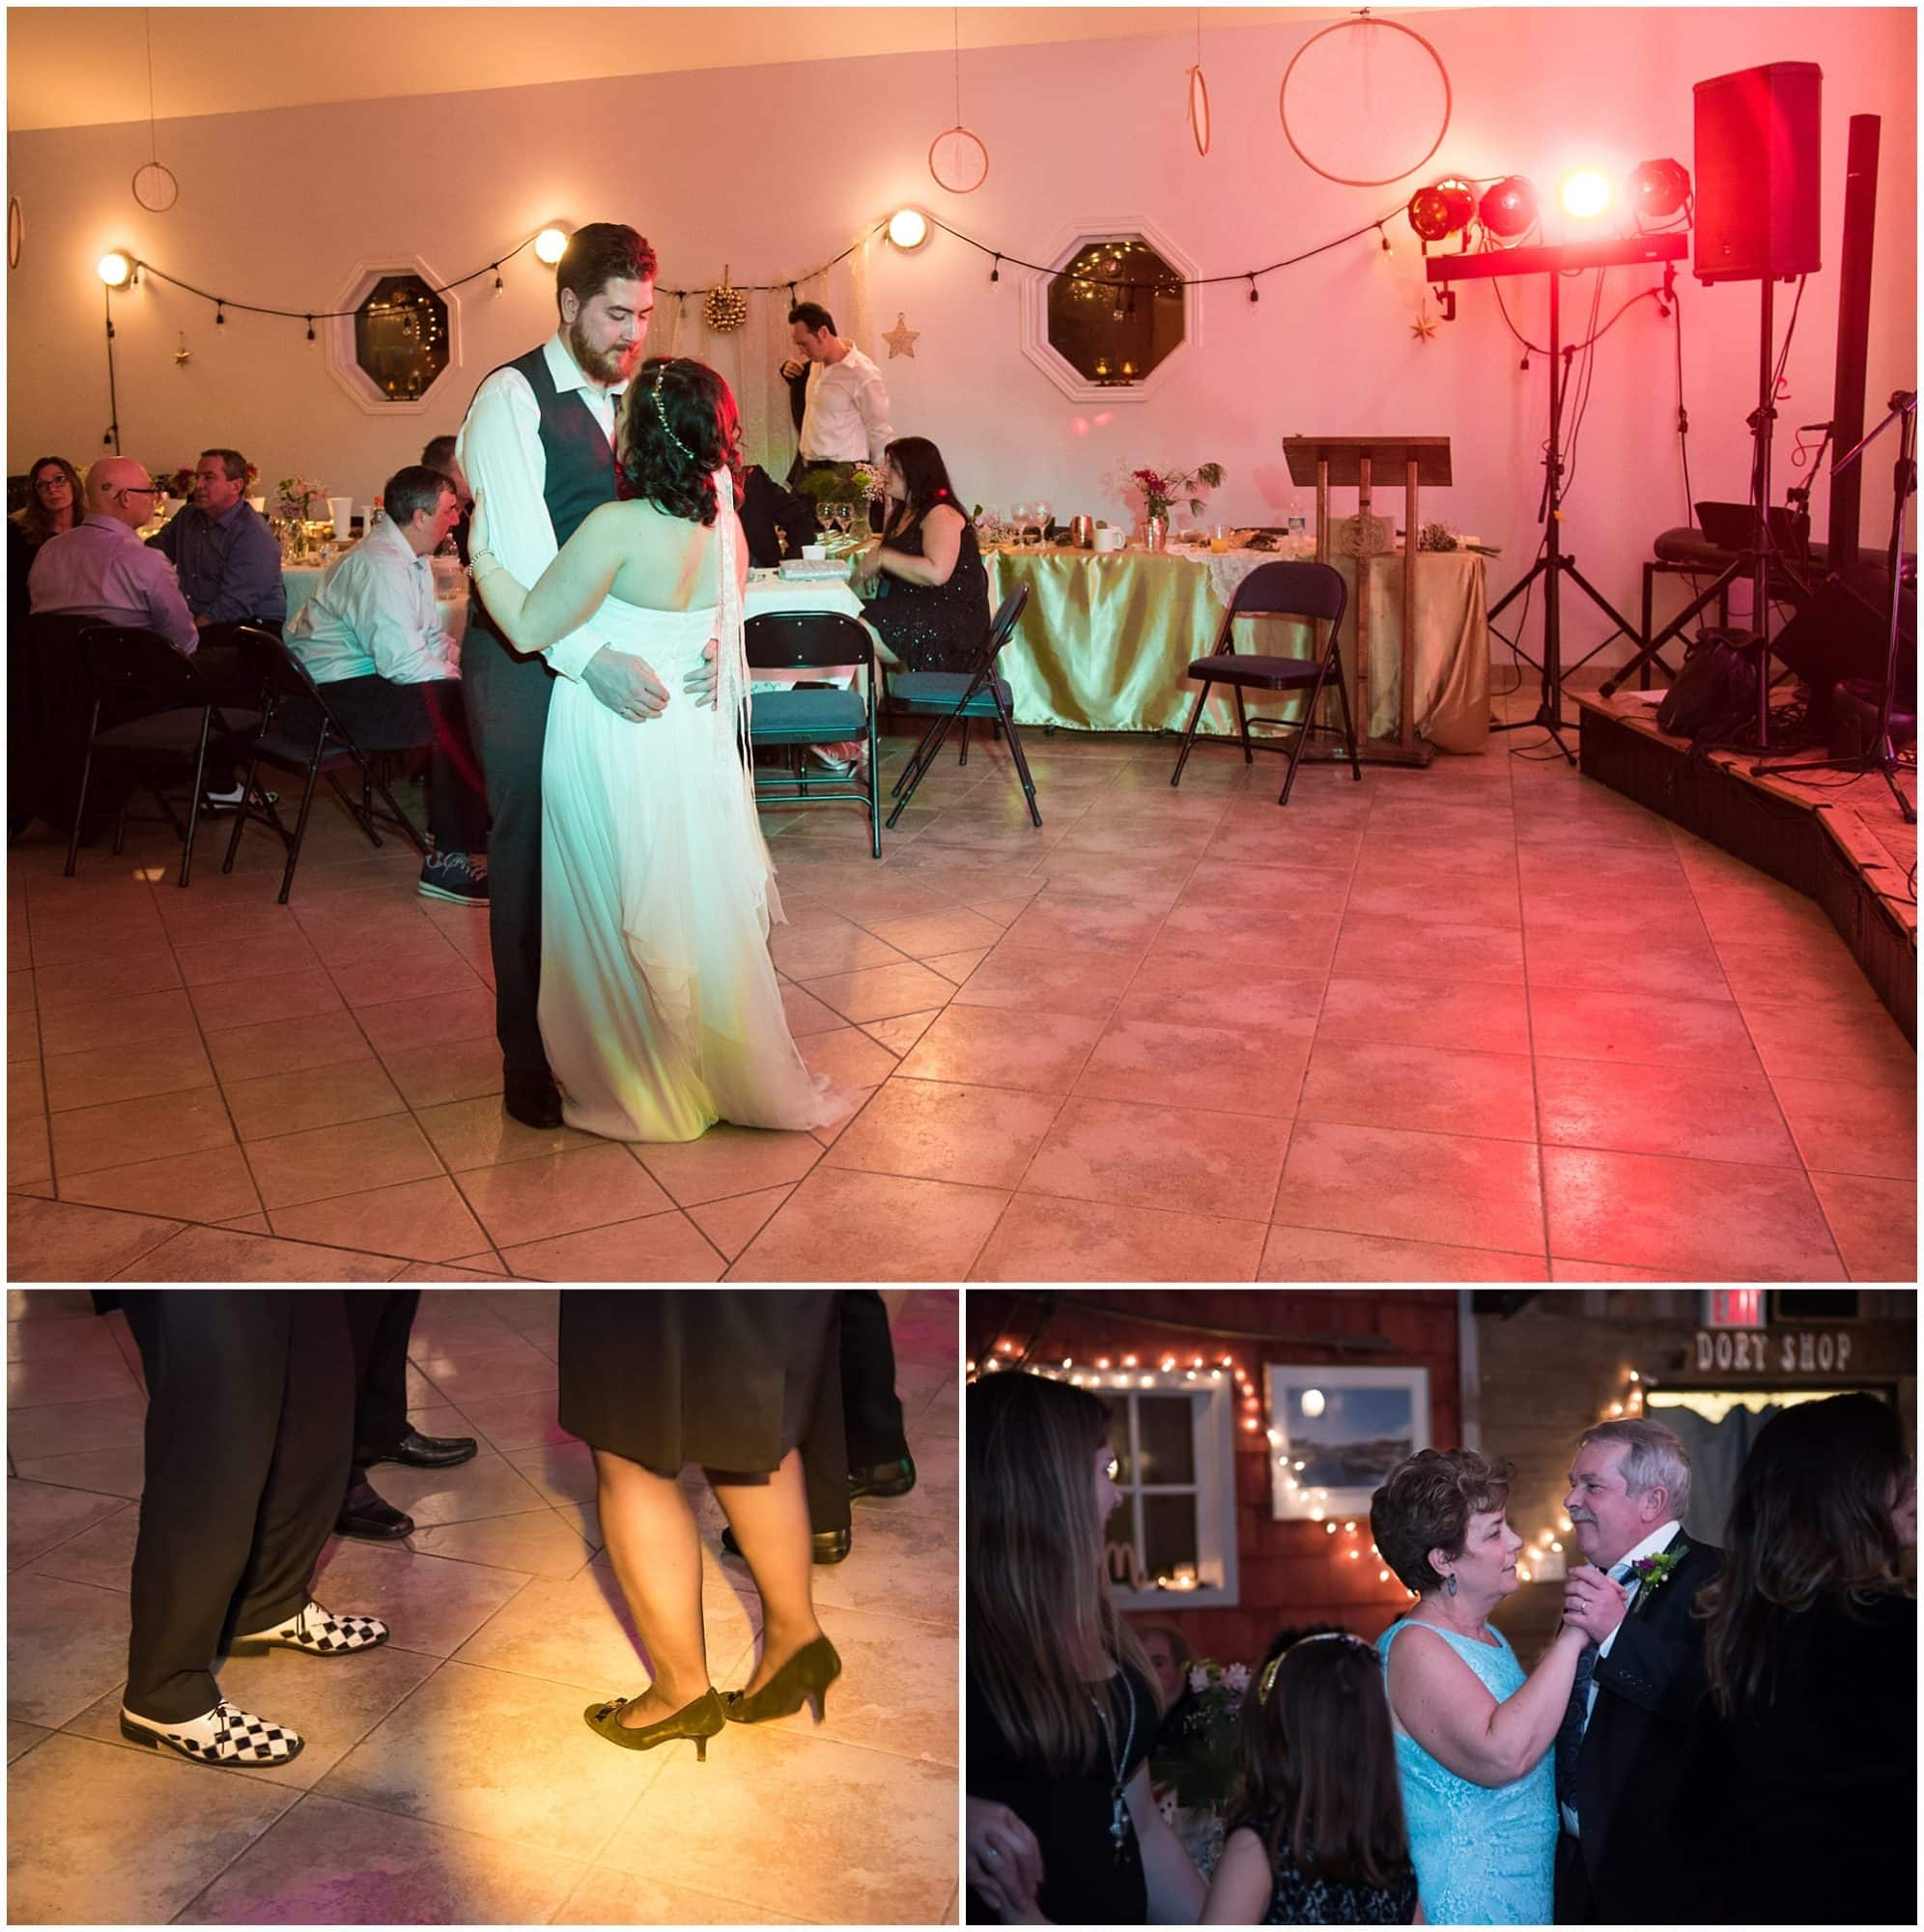 The bride and groom dancing along with their guests at the Fisherman's Cove wedding.